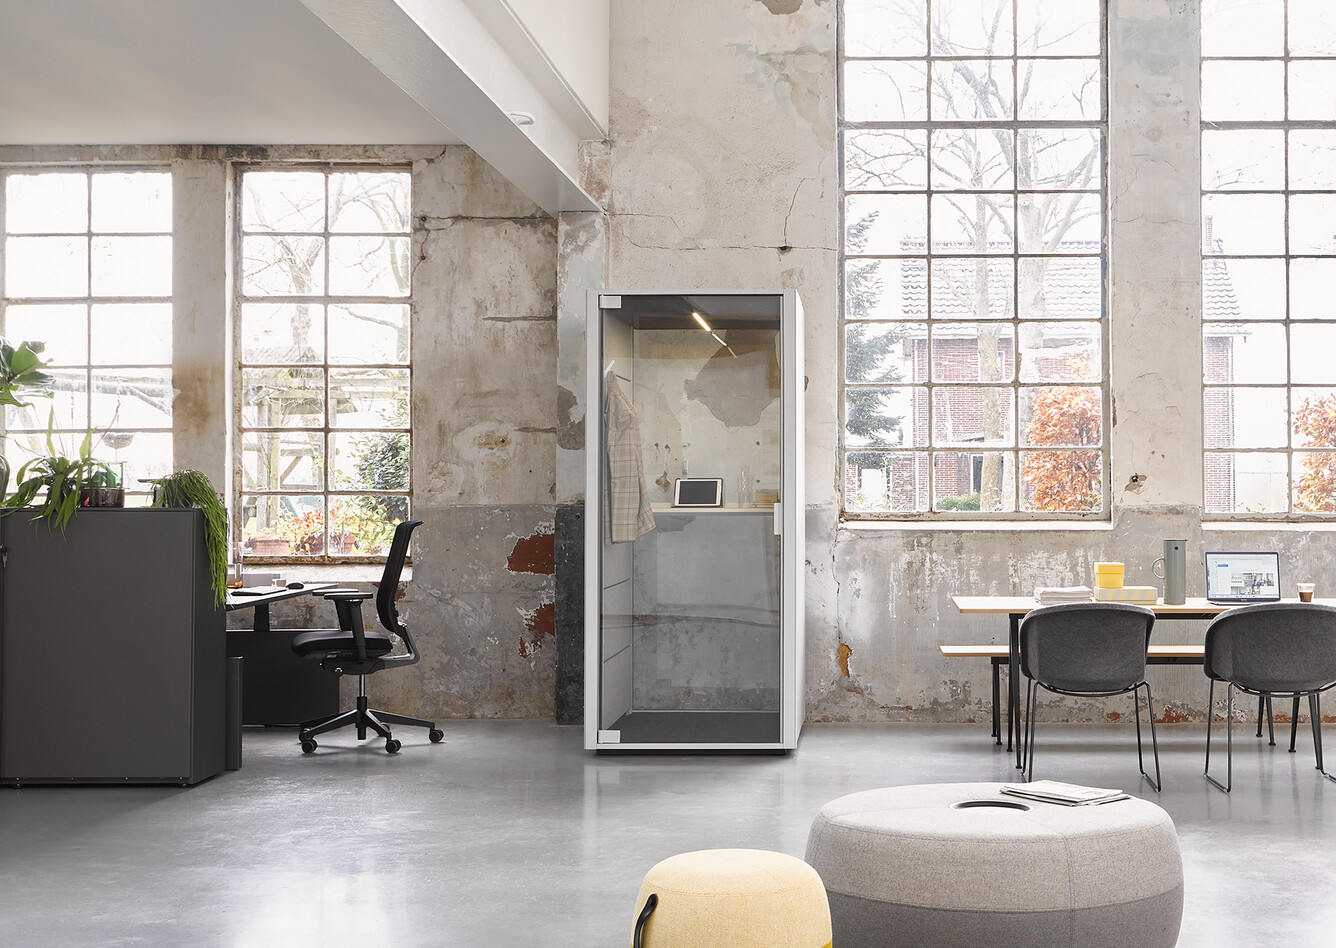 Ahrend Loungescape Powernap and SDK Balance with Ease and Qabin with Recharge Pyramid and Well armchairs in a Hybrid working community setting 01